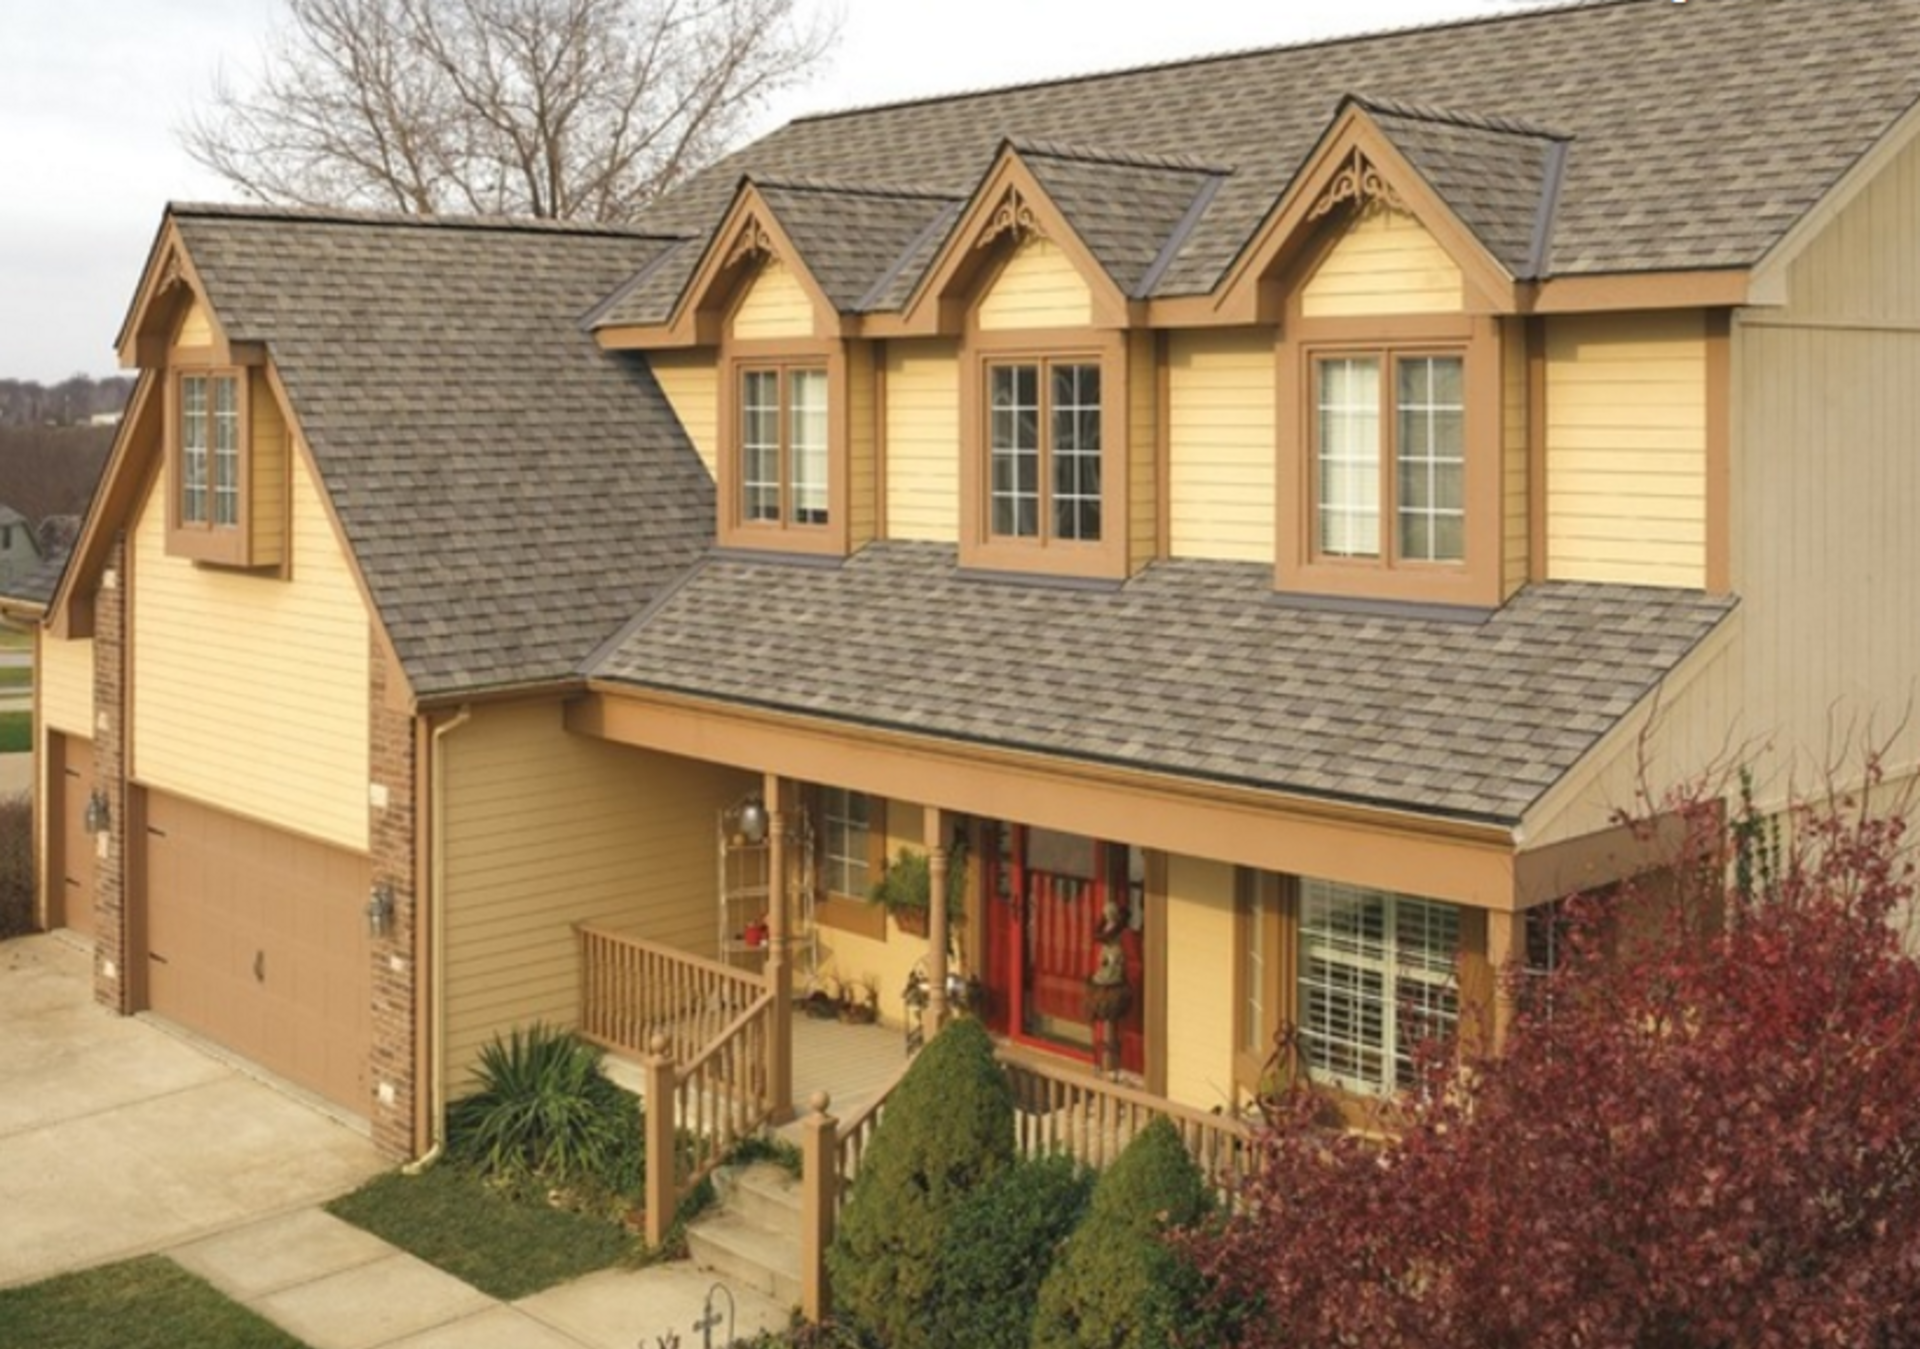 How to Get Your Roof Fixed  Leaky roof? Missing shingles? Here are the basics for tackling that roof repair